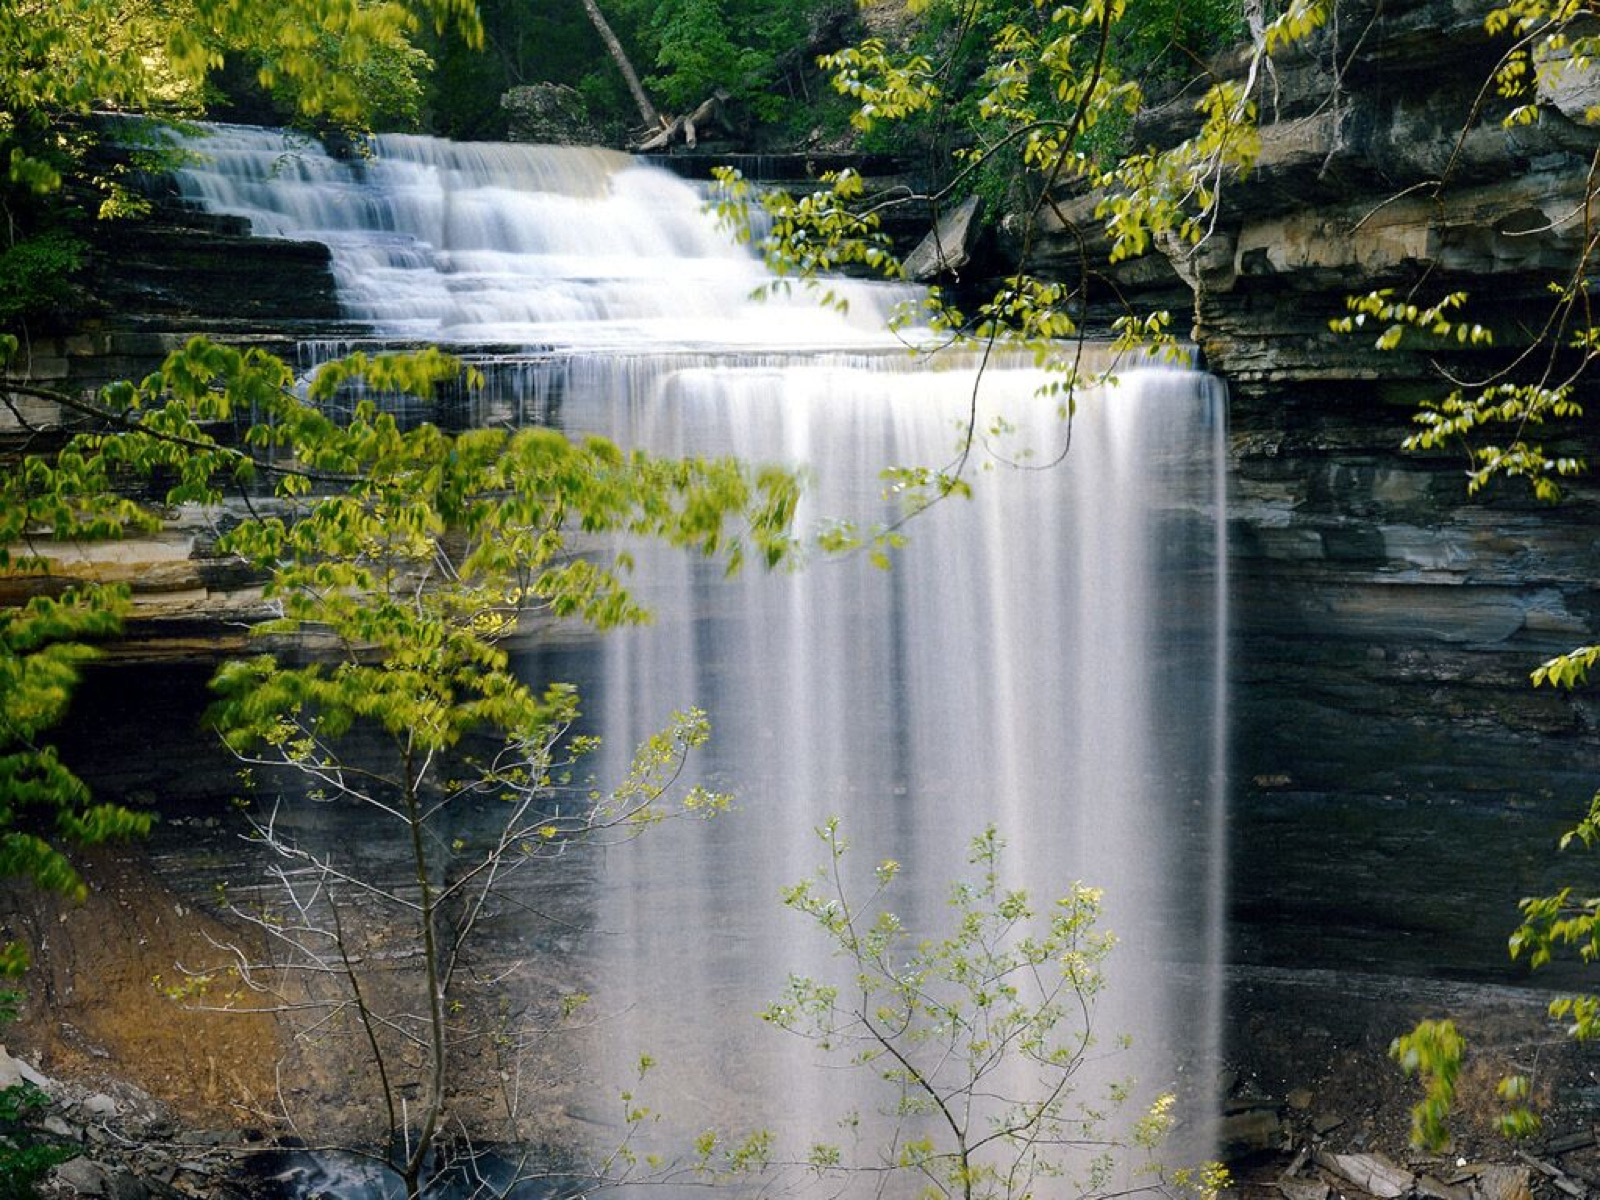 Located about 90 miles southwest of Cincinnati near Madison, Indiana, Clifty Falls State Park features one of the Hoosier state's most difficult hiking trails, running along the Clifty Creek ravine and sporting incredible views of the park's two waterfalls. The park also features campgrounds, a restaurant, a pool, tennis courts, picnic areas, and an inn. / Image courtesy of Flickr user Bernie Kasper // Published: 3.10.18